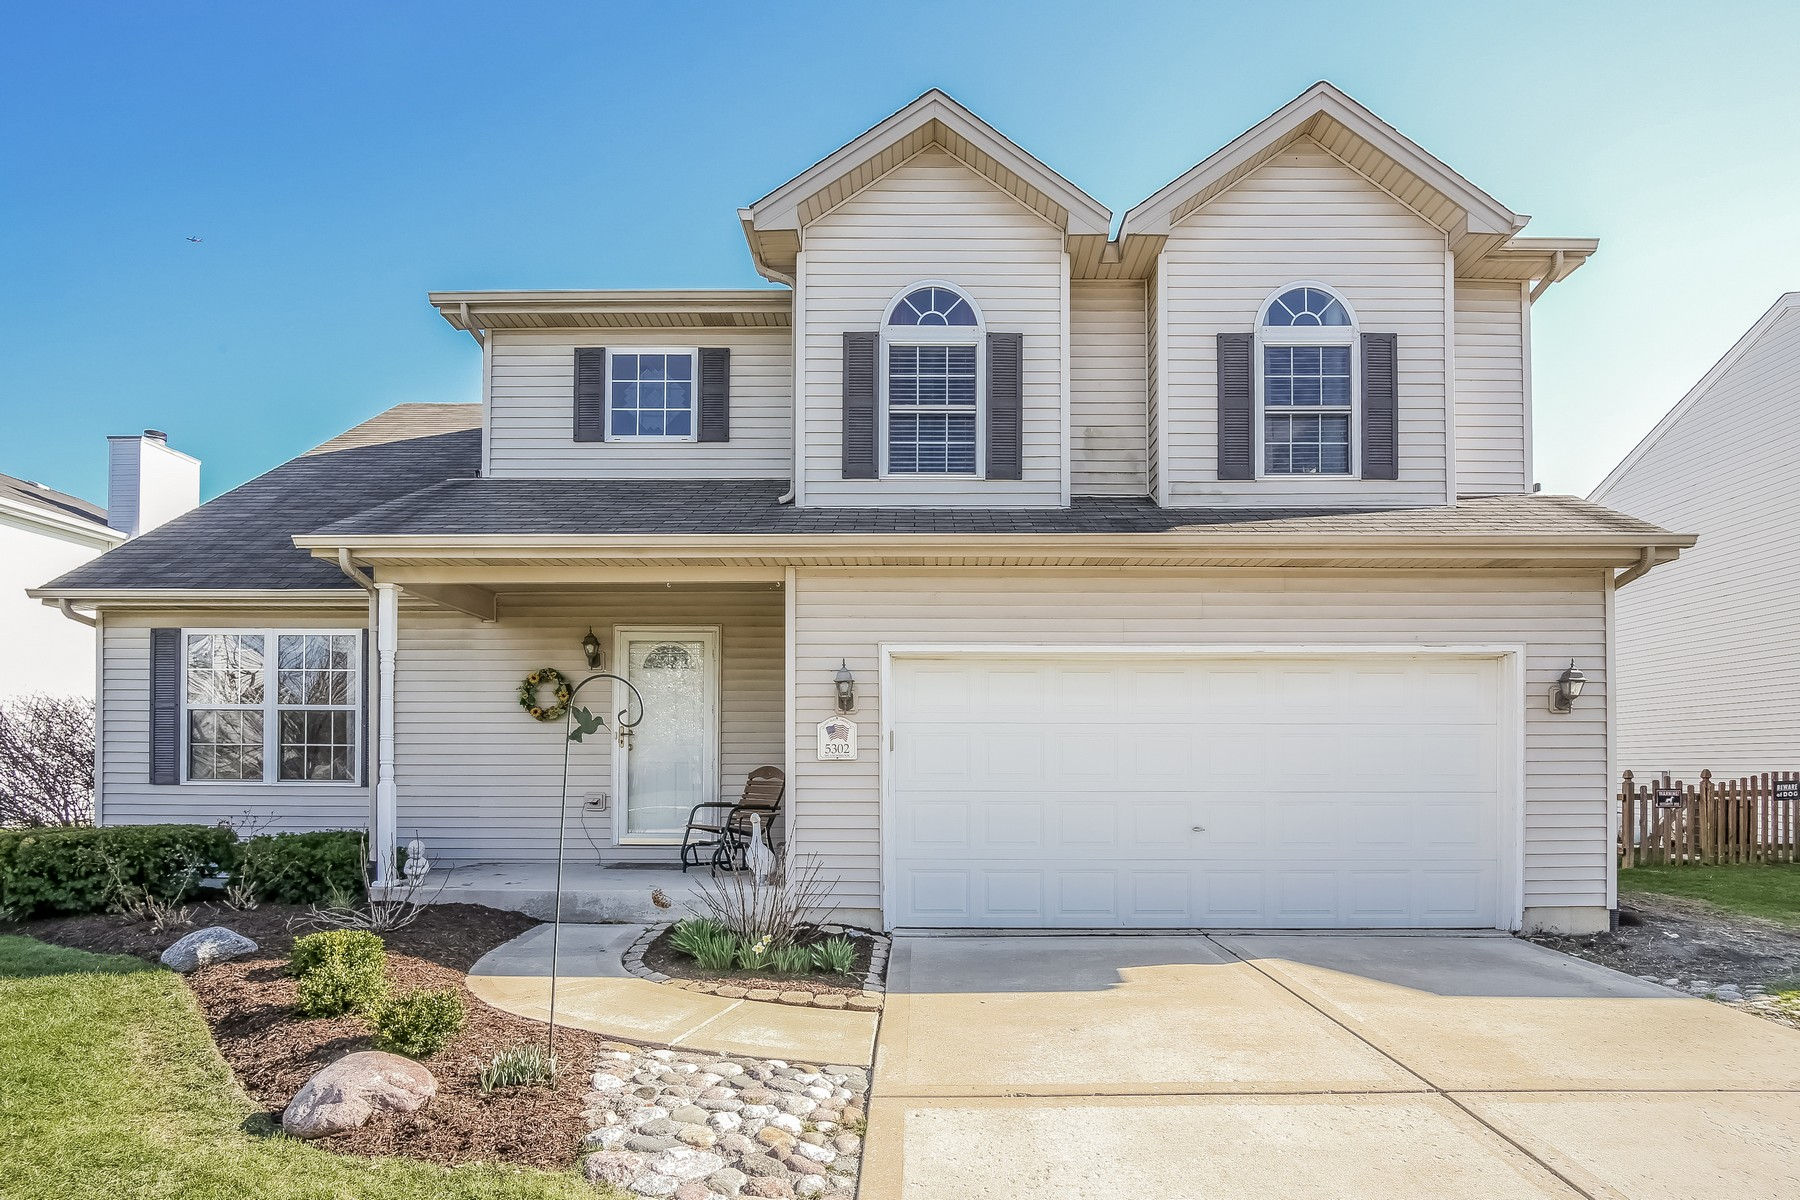 Single Family Home for Sale at Perfect Layout in Spacious Home 5302 Meadowbrook Street Plainfield, Illinois, 60586 United States